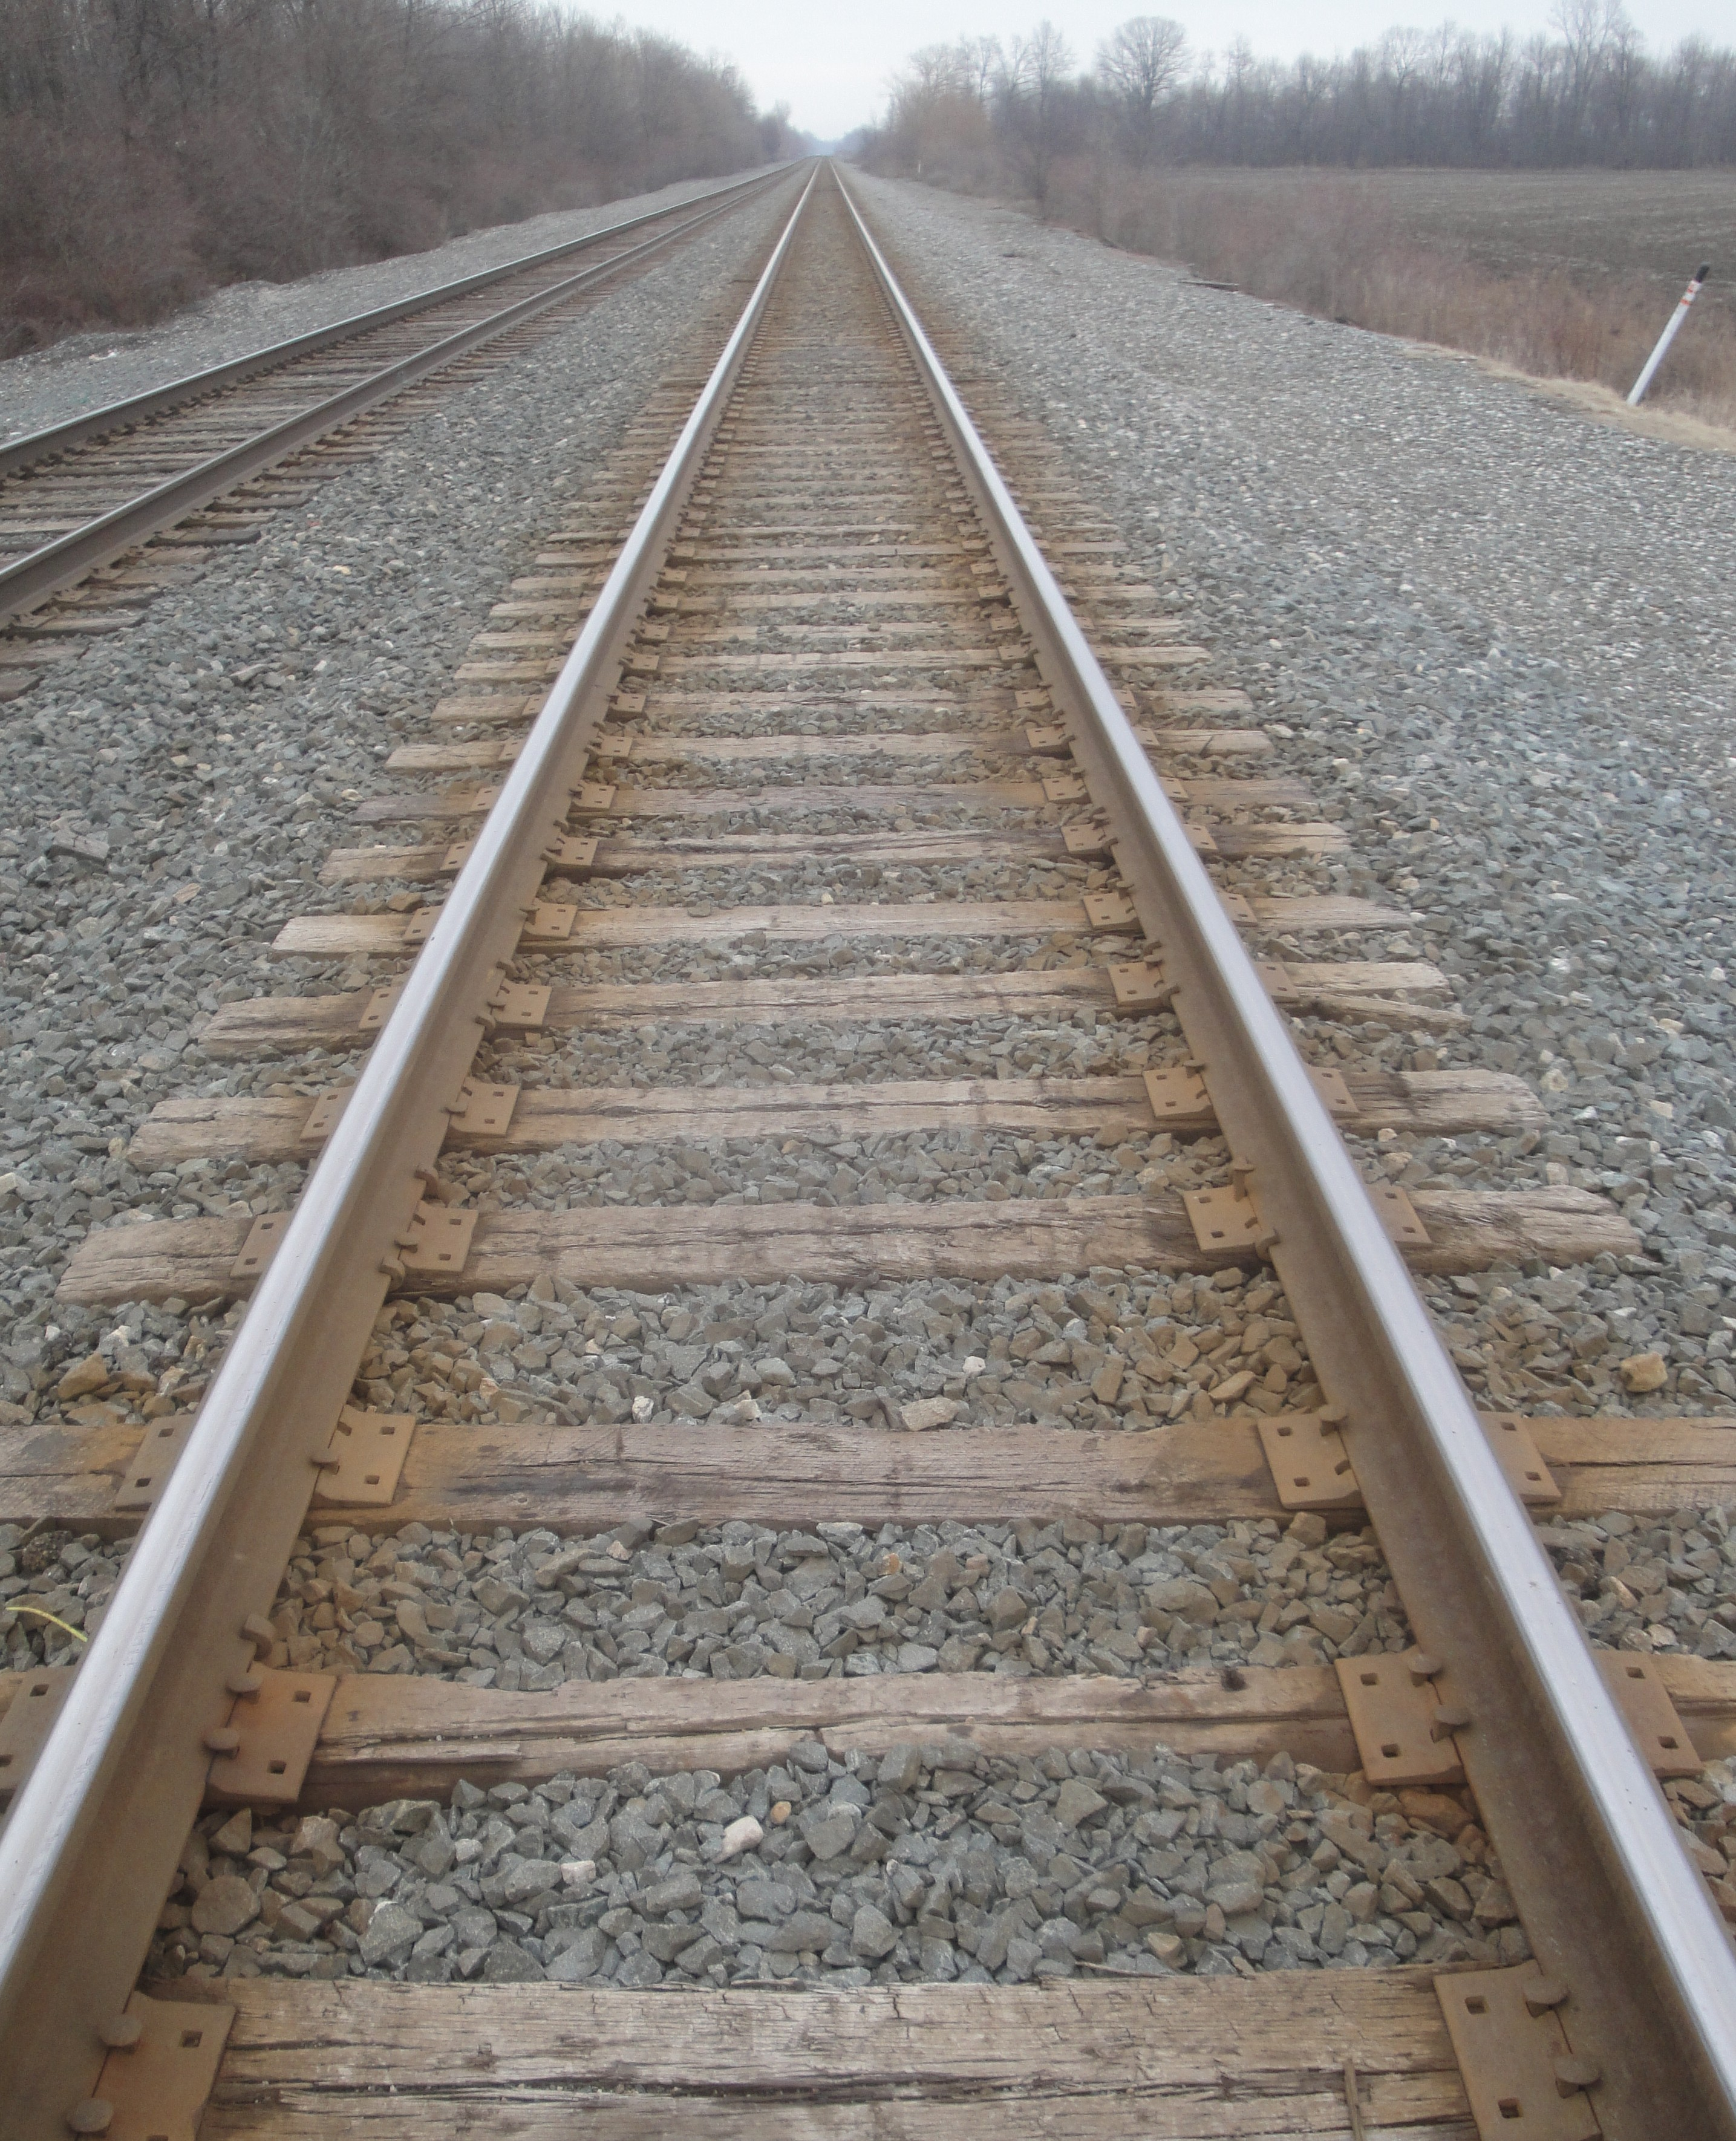 A Perspective On Train Tracks